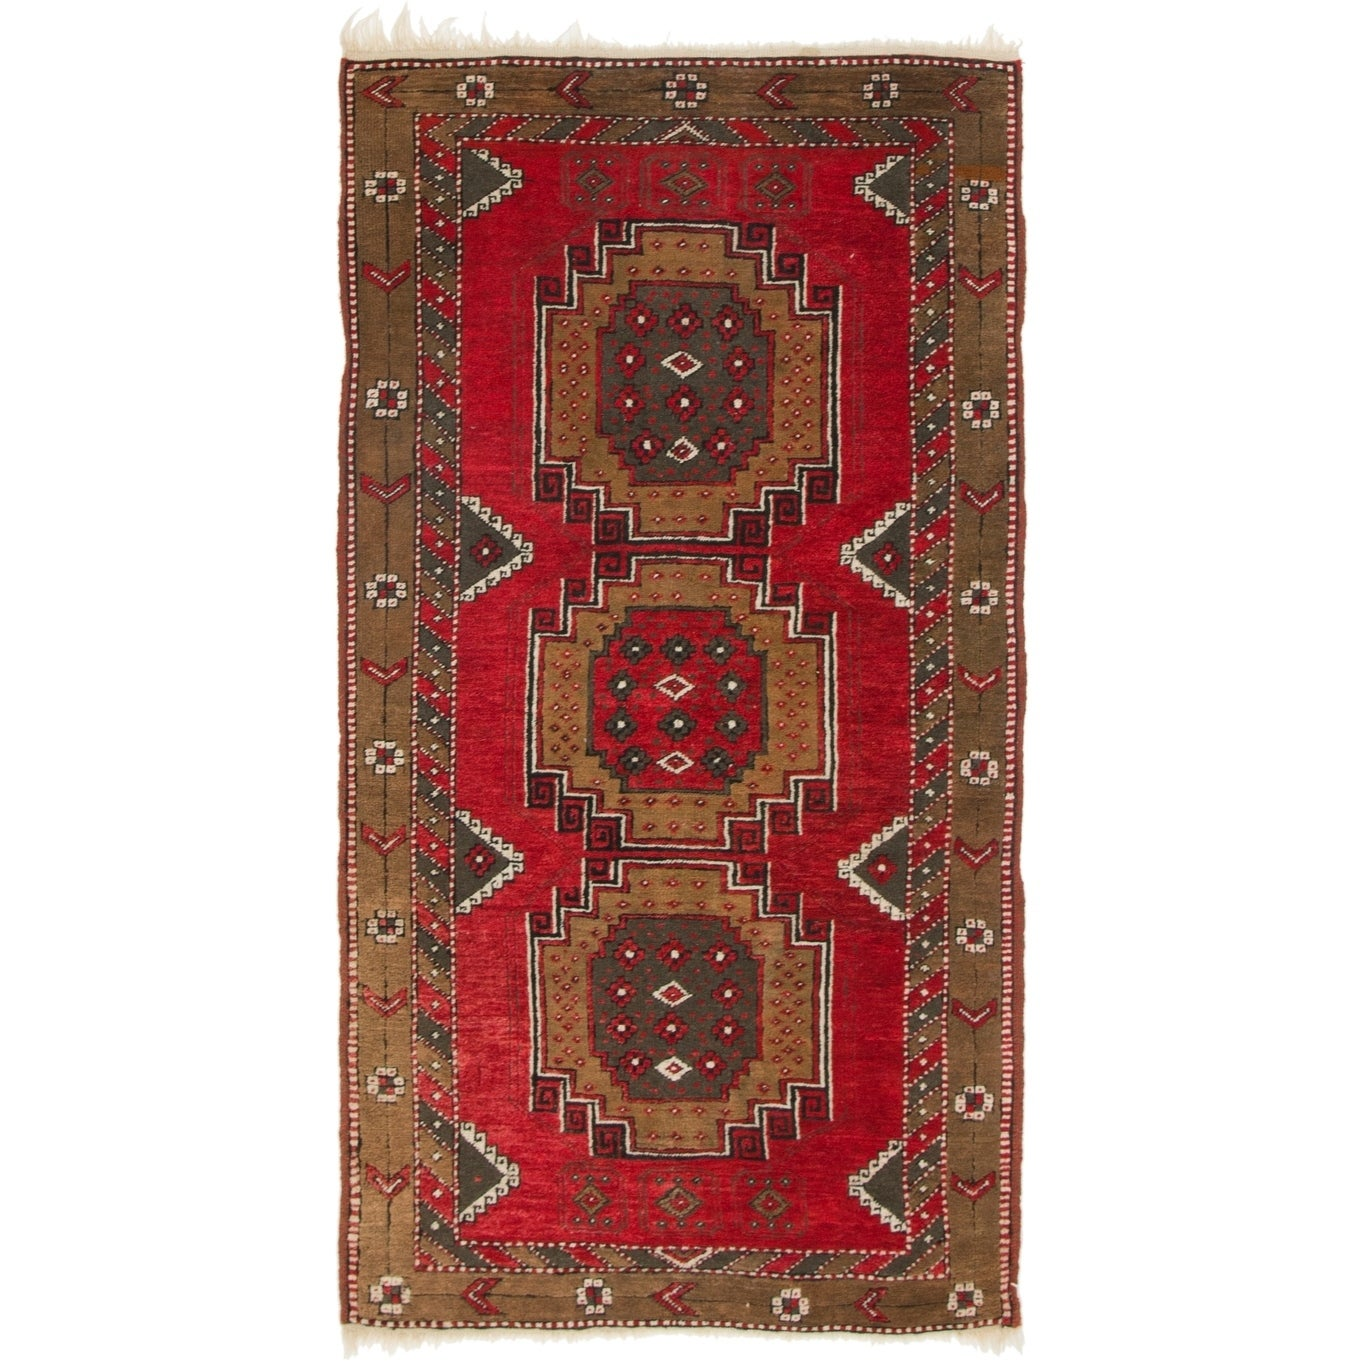 Hand Knotted Kars Semi Antique Wool Area Rug - 3' 3 x 6' 5 (Red - 3' 3 x 6' 5)